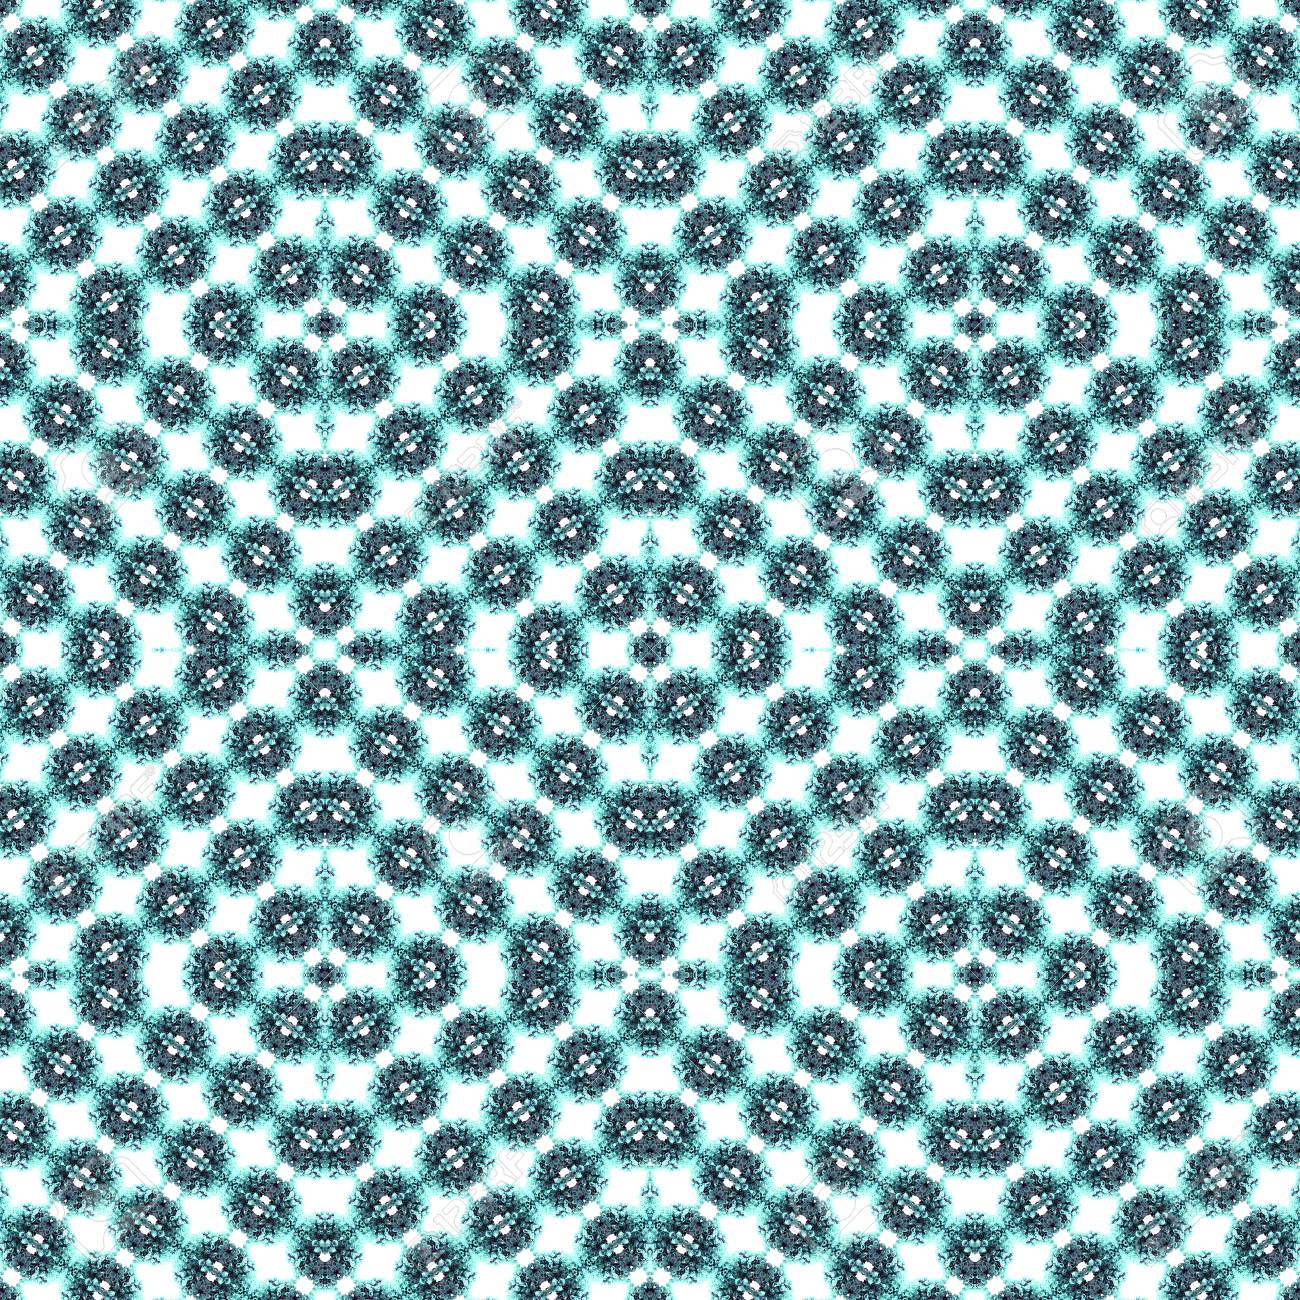 Abstract flowers seamless pattern background. Kaleidoscope from flowers. Hydraulic tile design. - 104074812